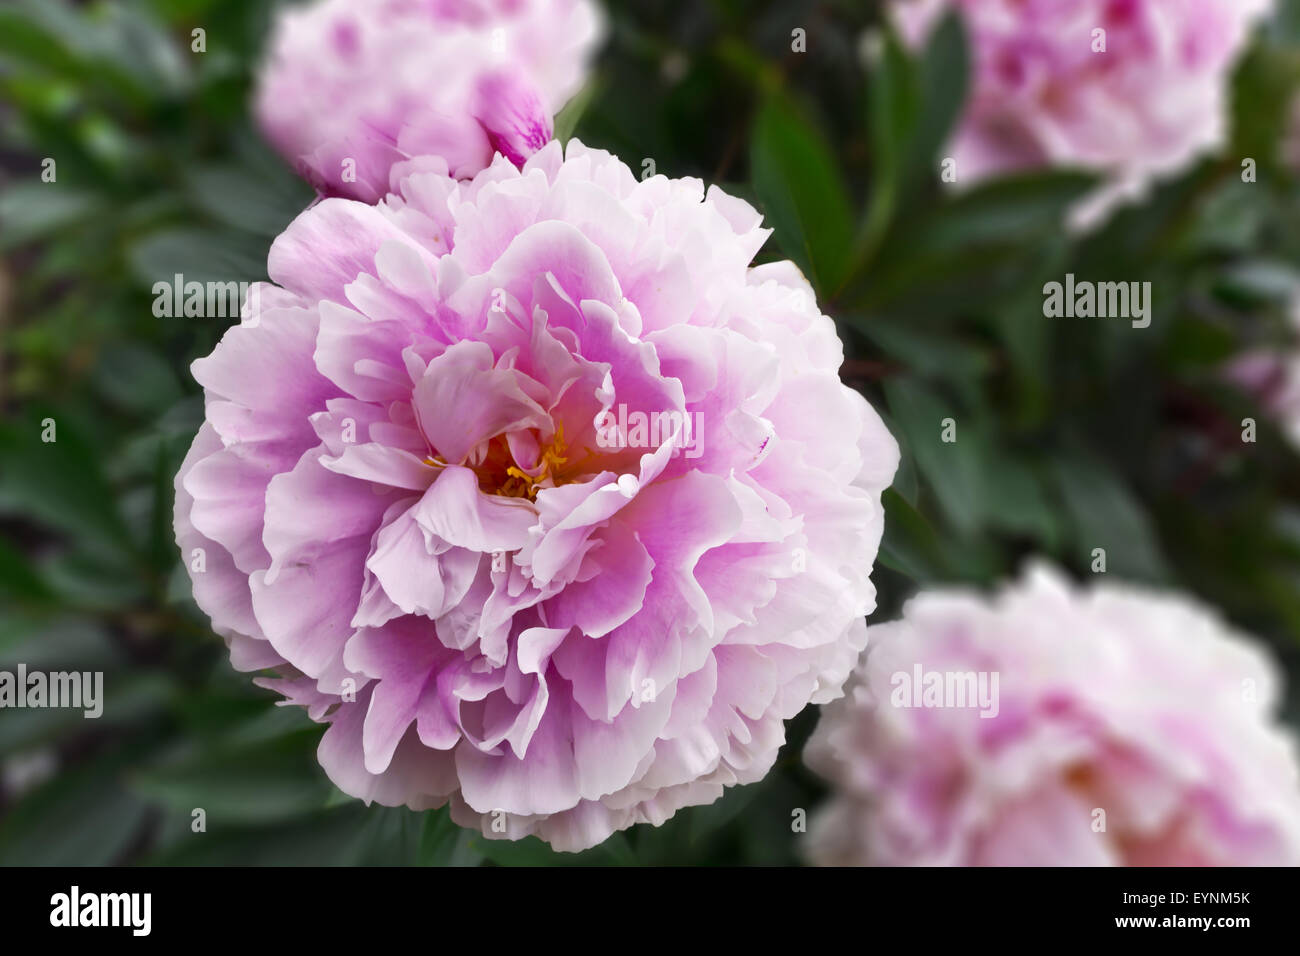 Large pink peony flowering plant in a garden with blurry background. Stock Photo